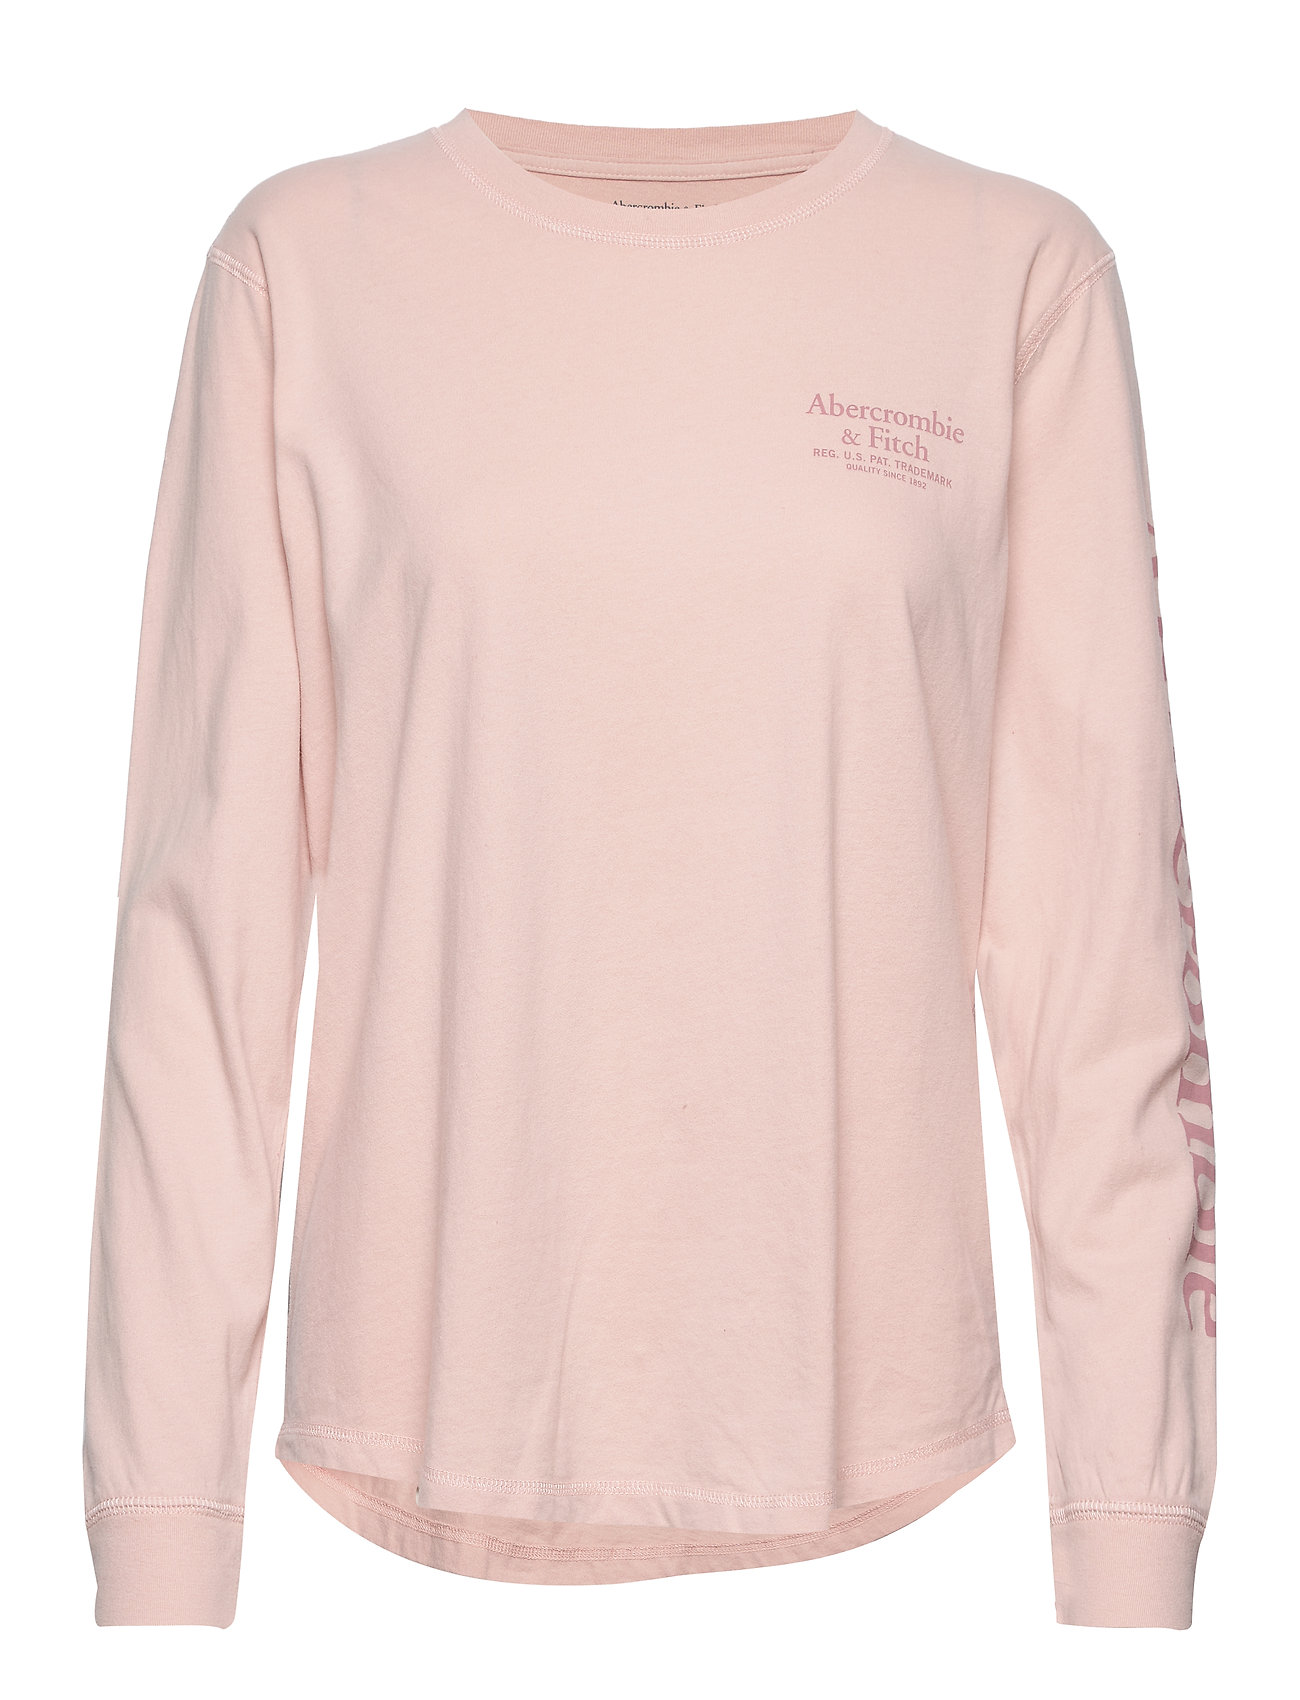 Abercrombie & Fitch Long Sleeve Logo Tee - MED PINK DD